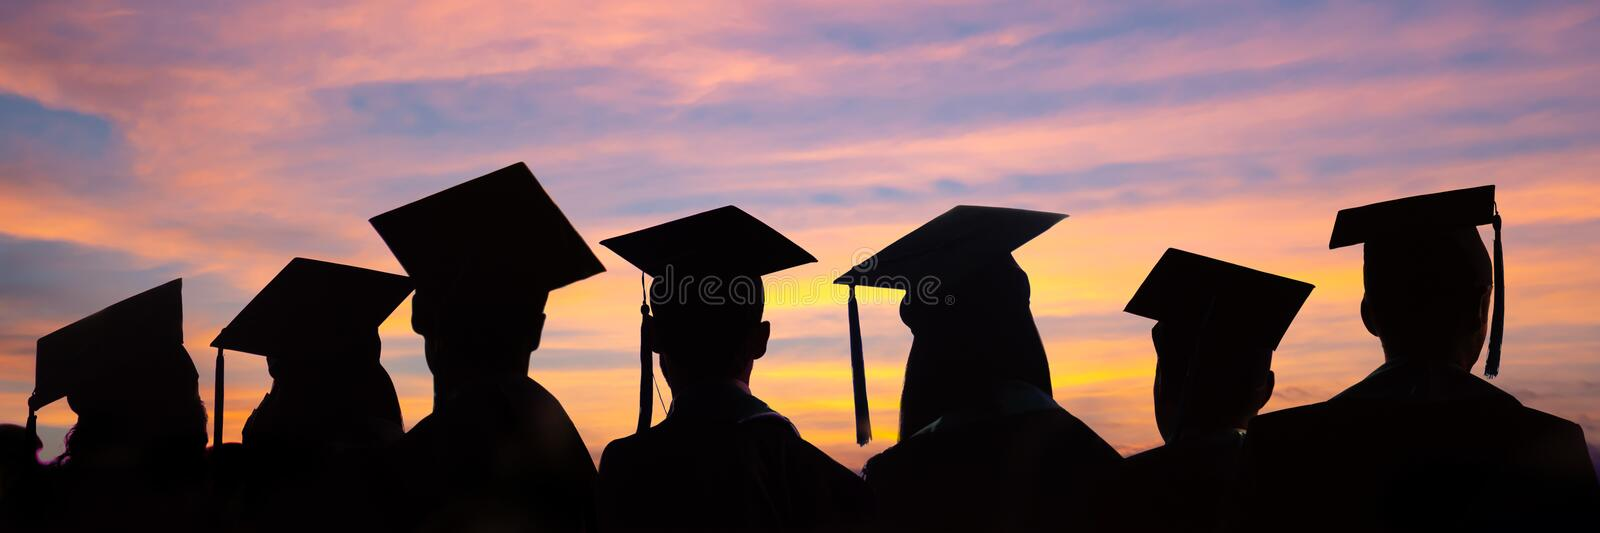 Silhouettes of students with graduate caps in a row on sunset background. Graduation ceremony web banner. Silhouettes of students with graduate caps in a row on stock images